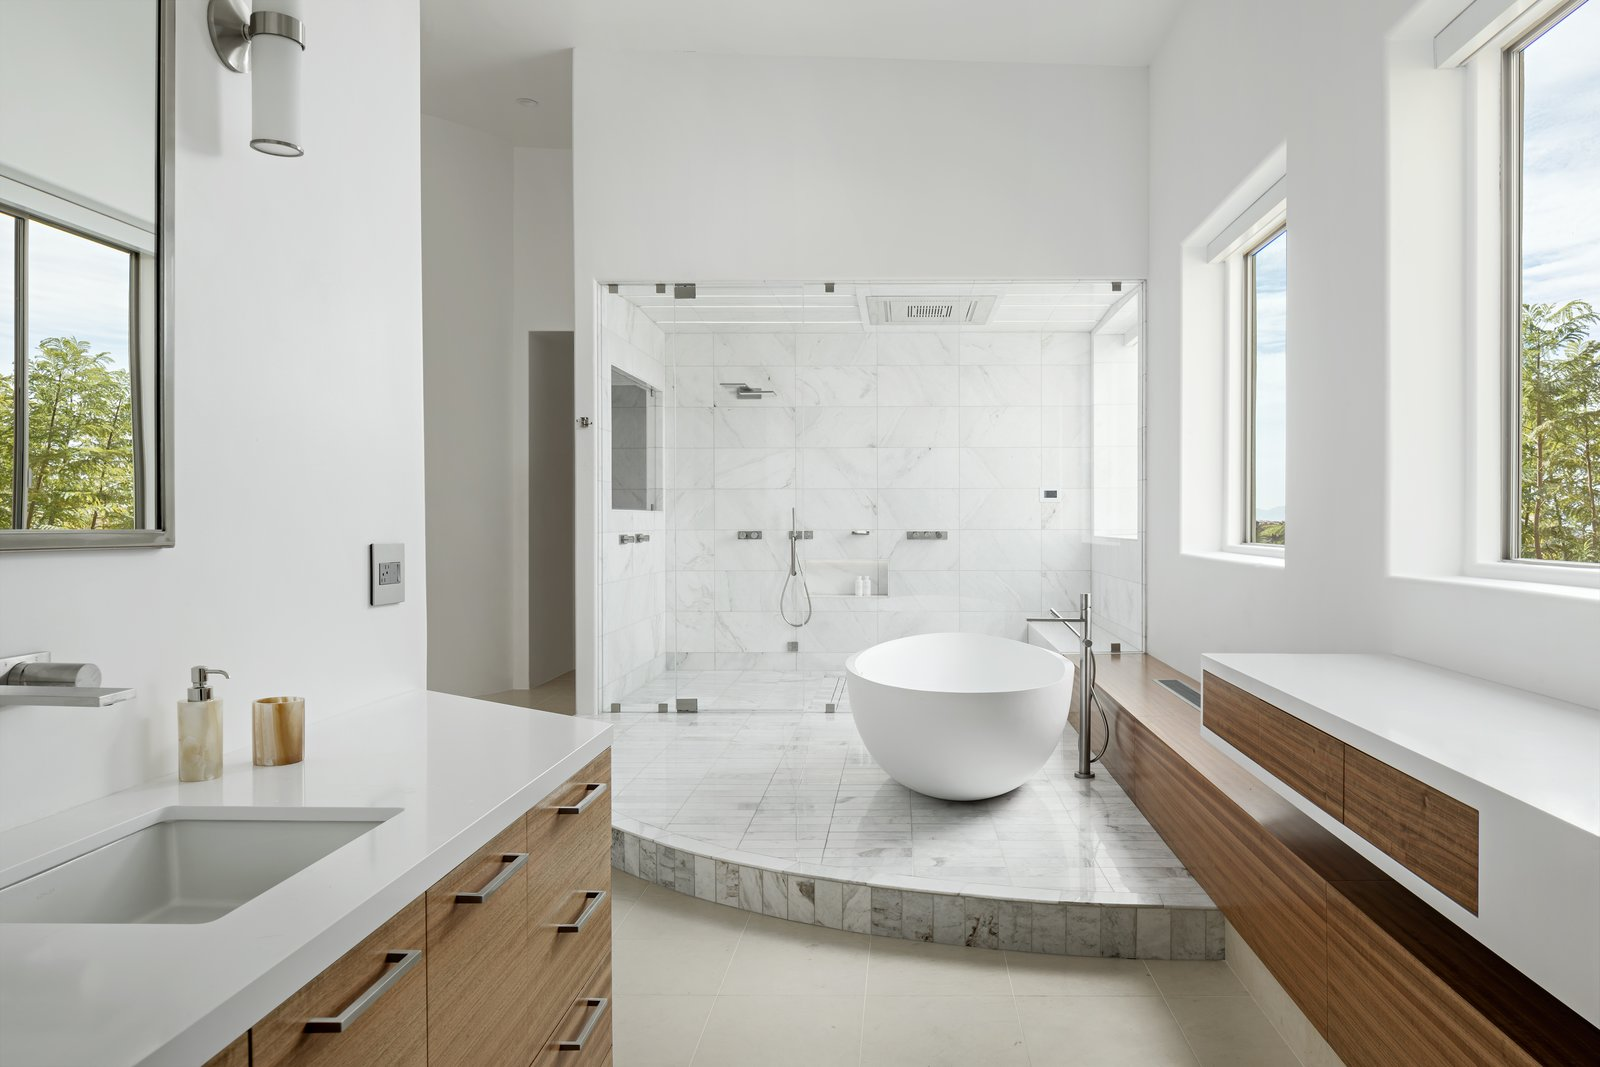 Both vanities with freestanding tub and steam shower in the background